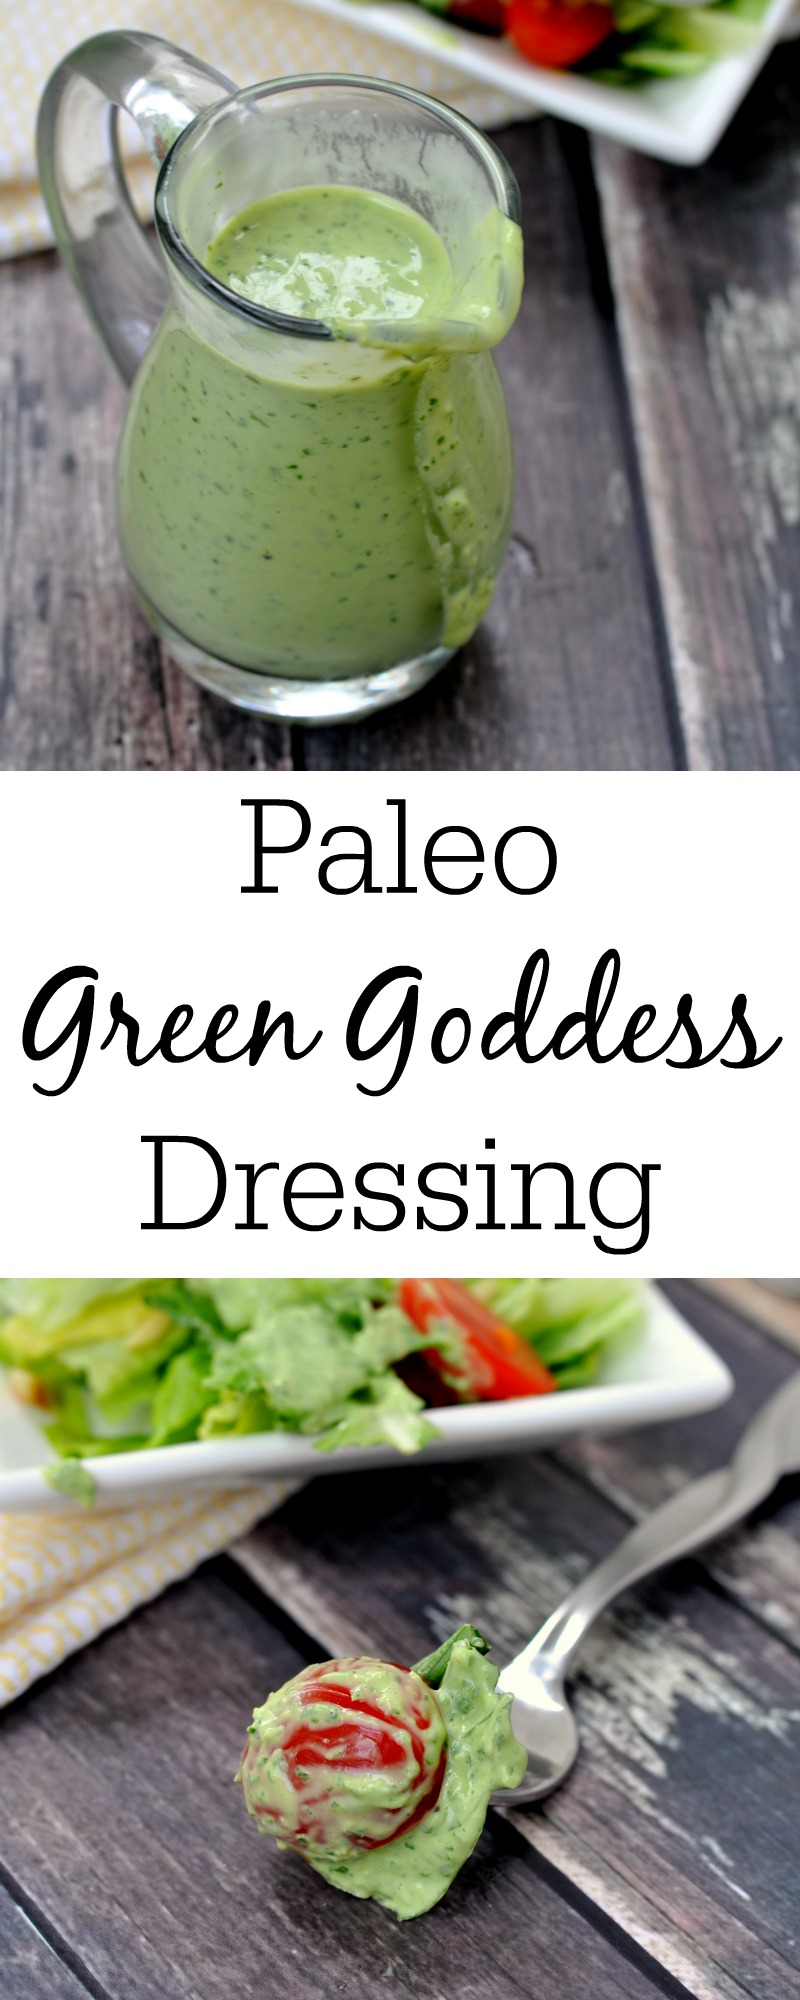 Your salads will never be the same once you try this paleo green goddess dressing with them. The recipe is so easy and really tasty.